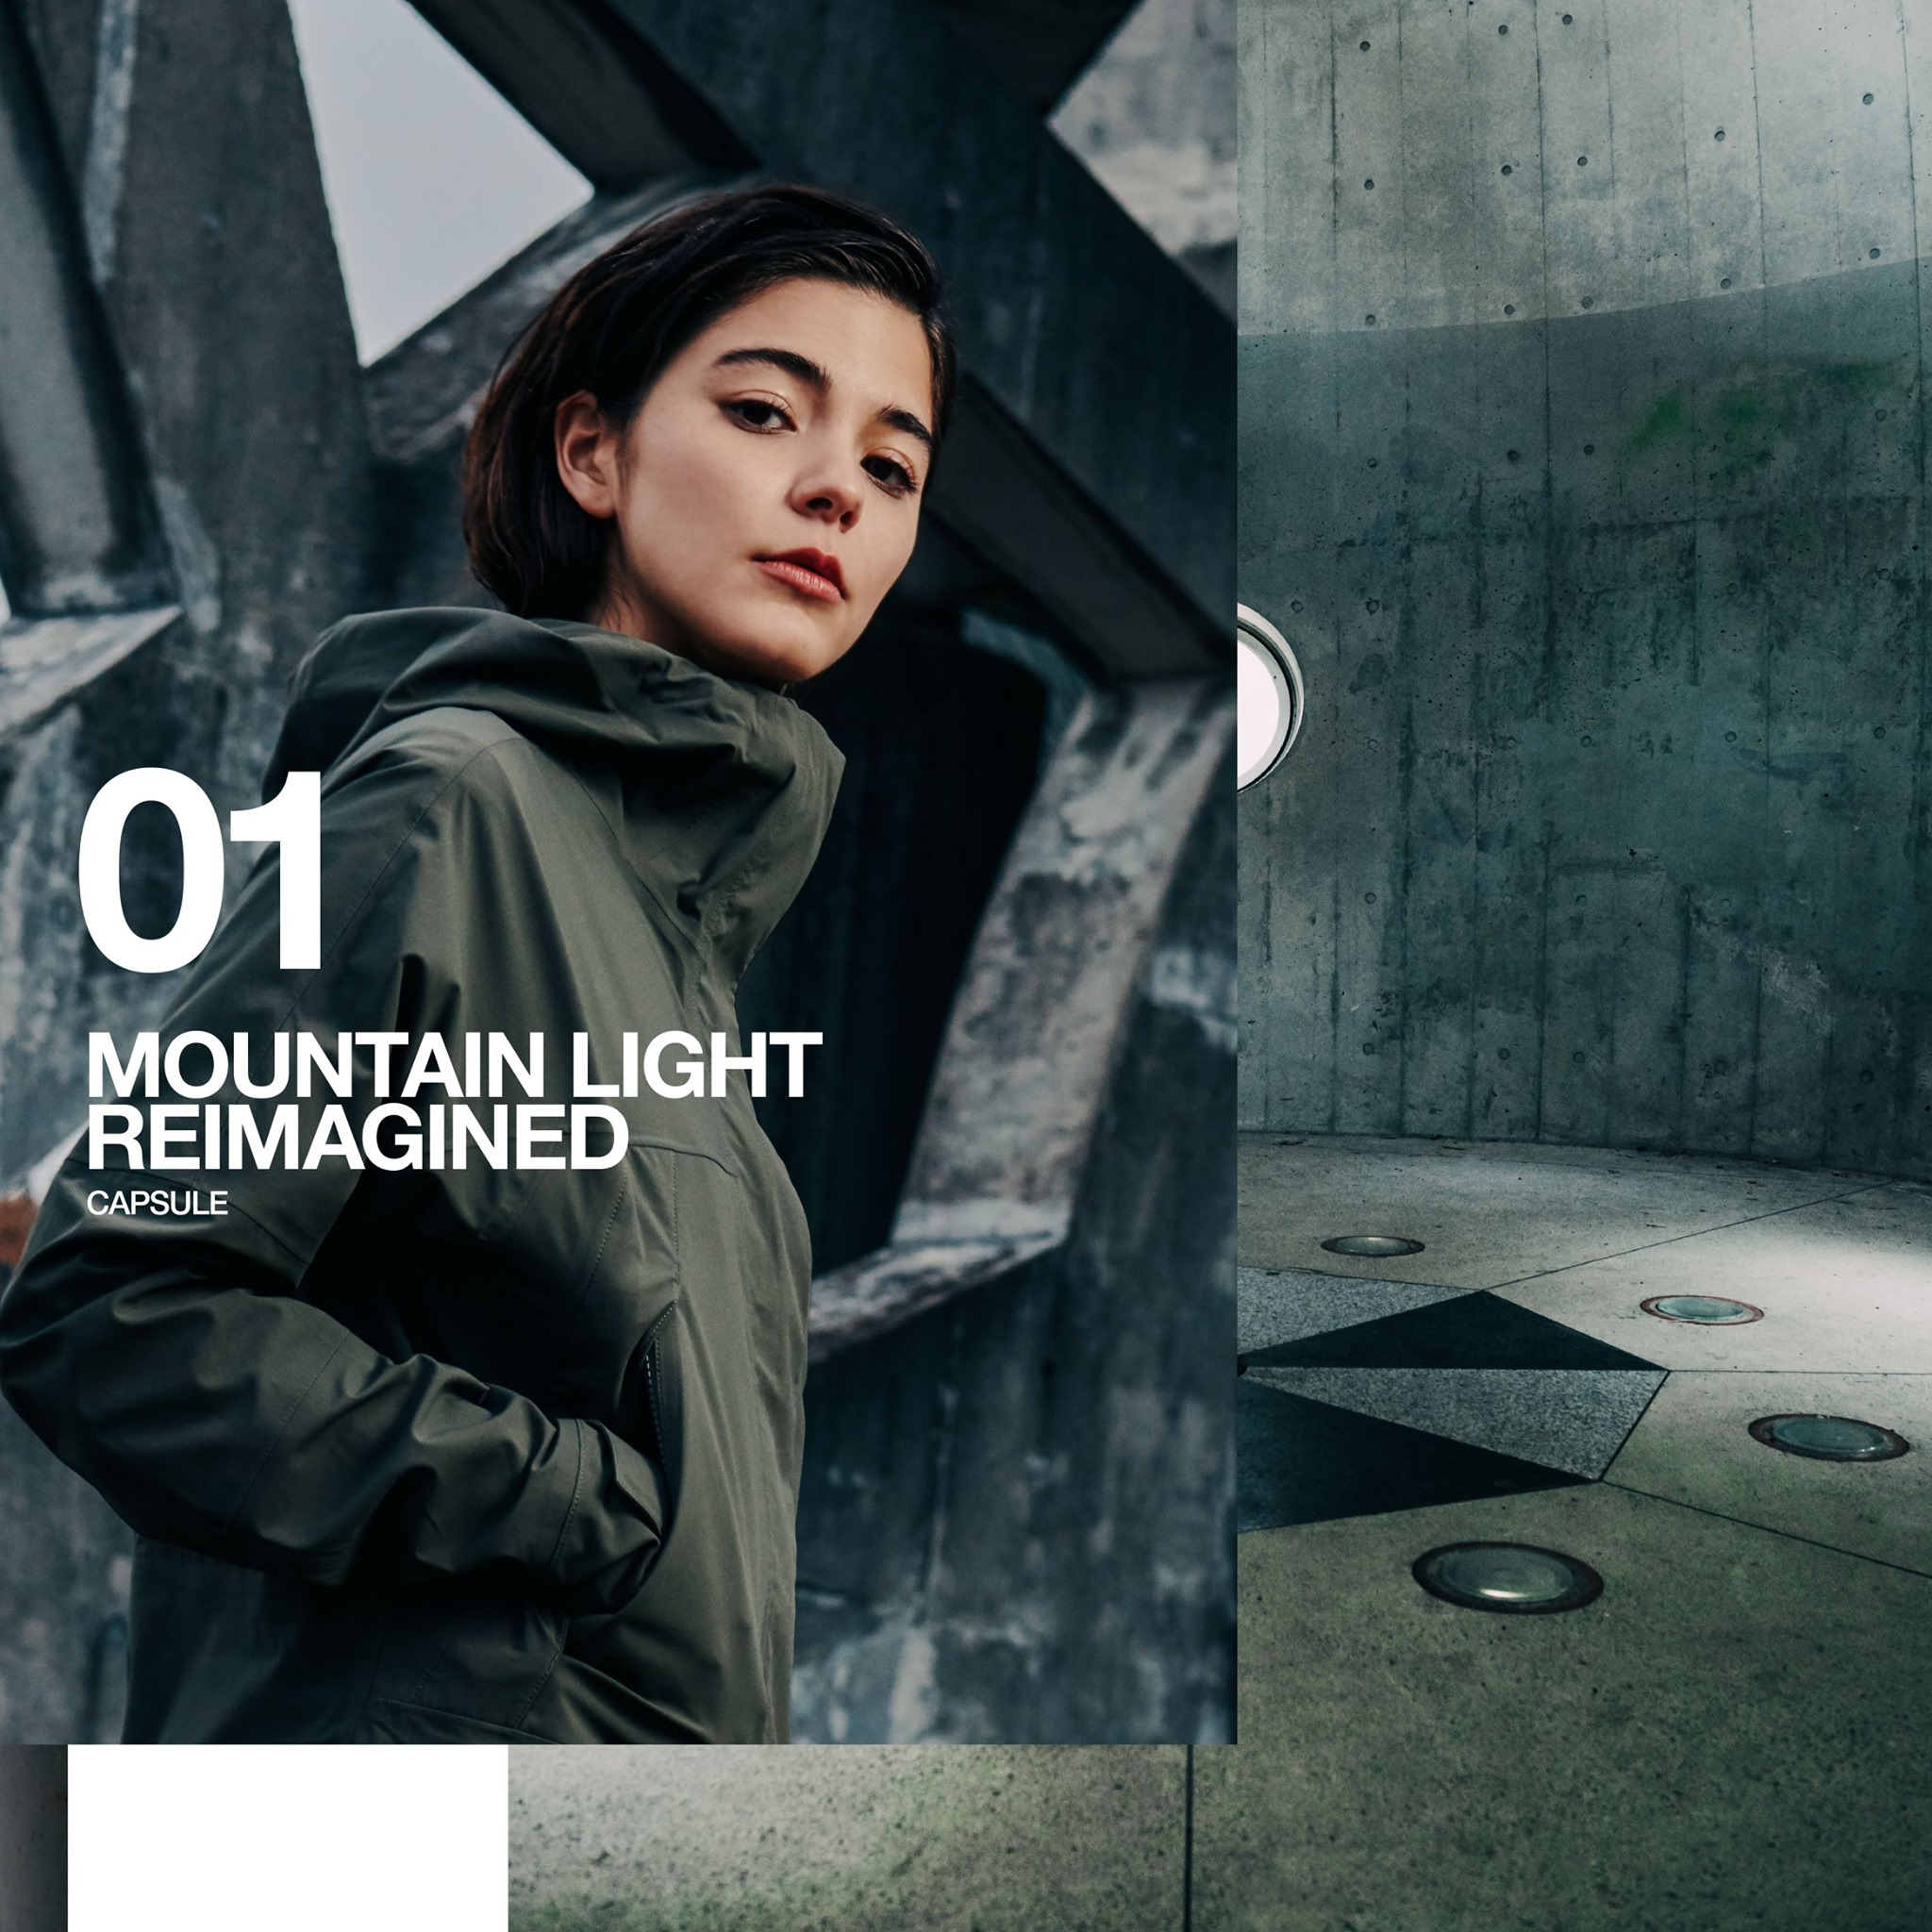 The North Face UE SS2020 01 MOUNTIN LIGHT REIMAGINED